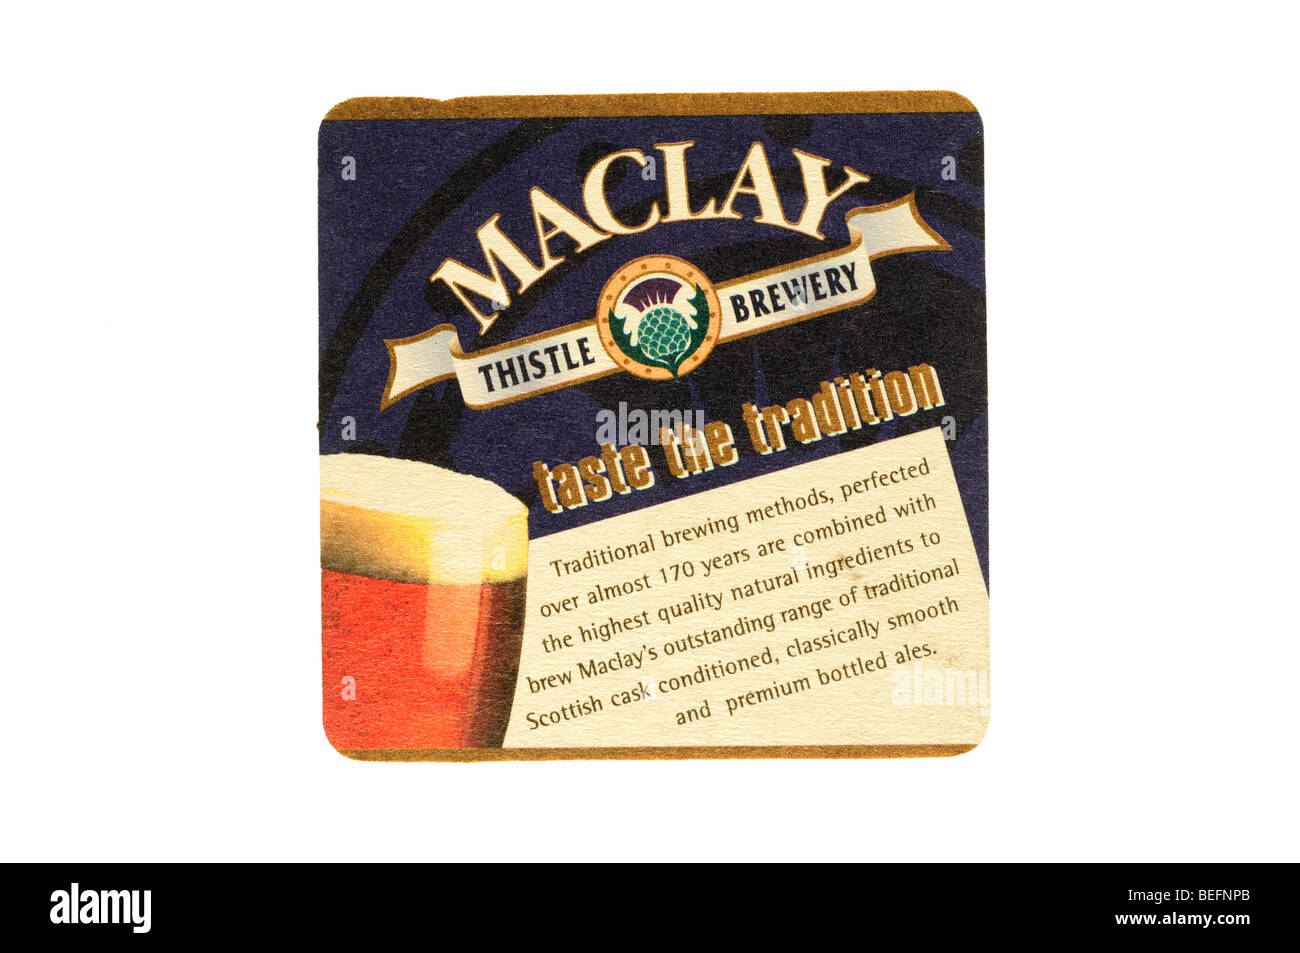 maclay thistle brewery taste the tradition - Stock Image